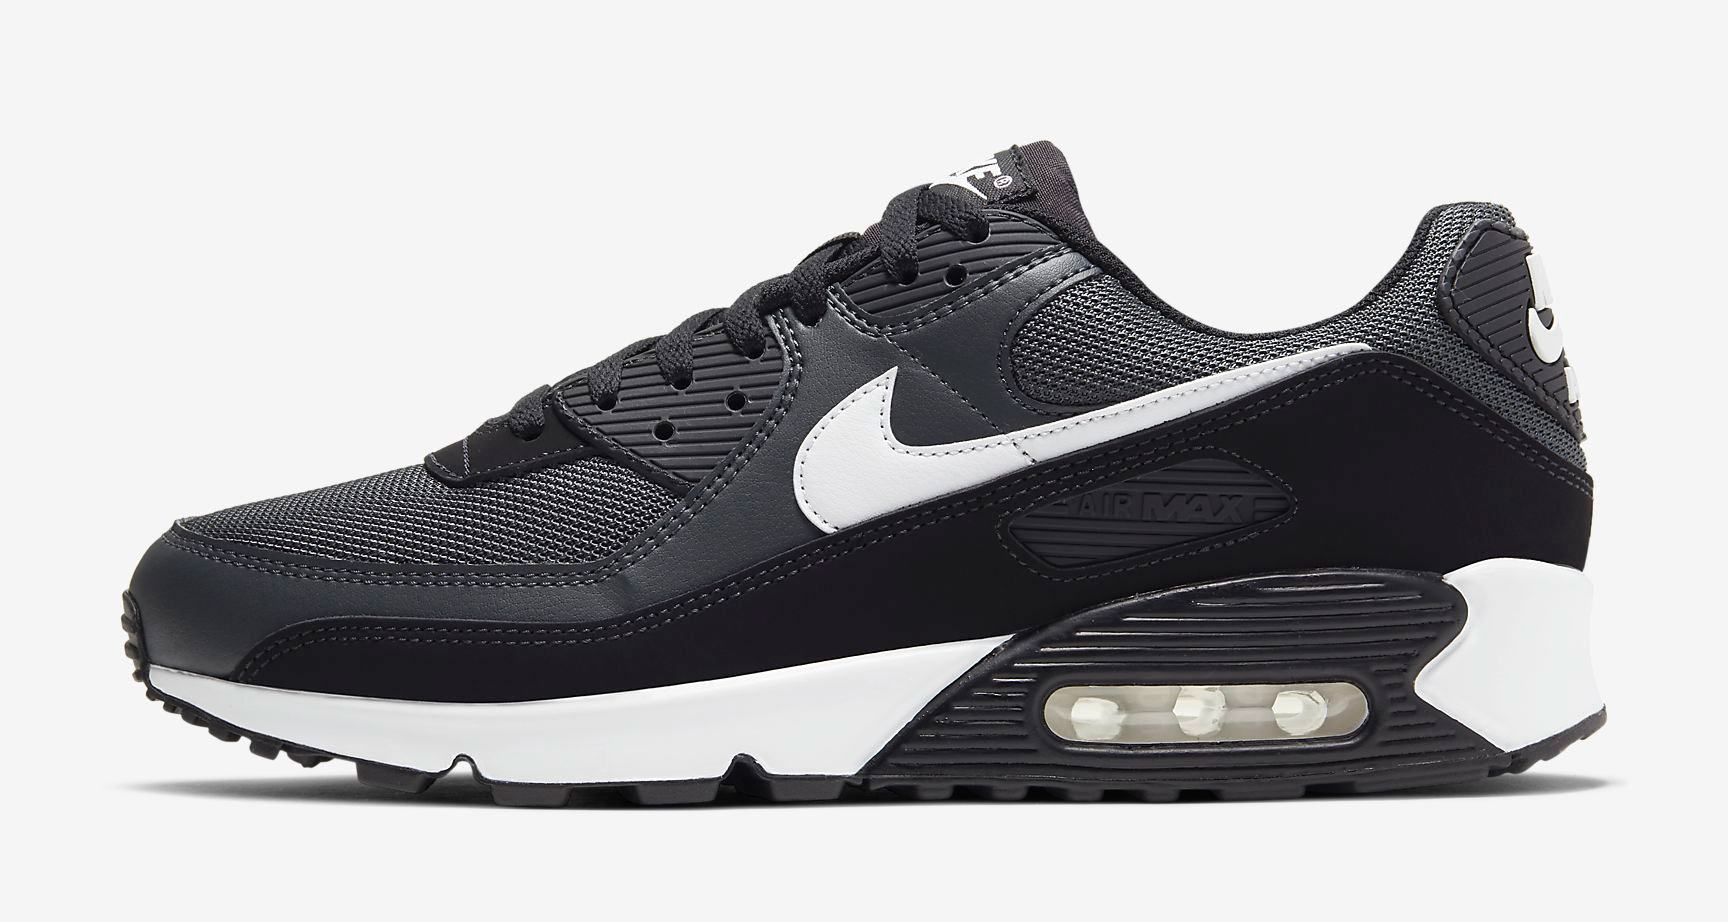 nike-air-max-90-iron-grey-black-white-2020-release-date